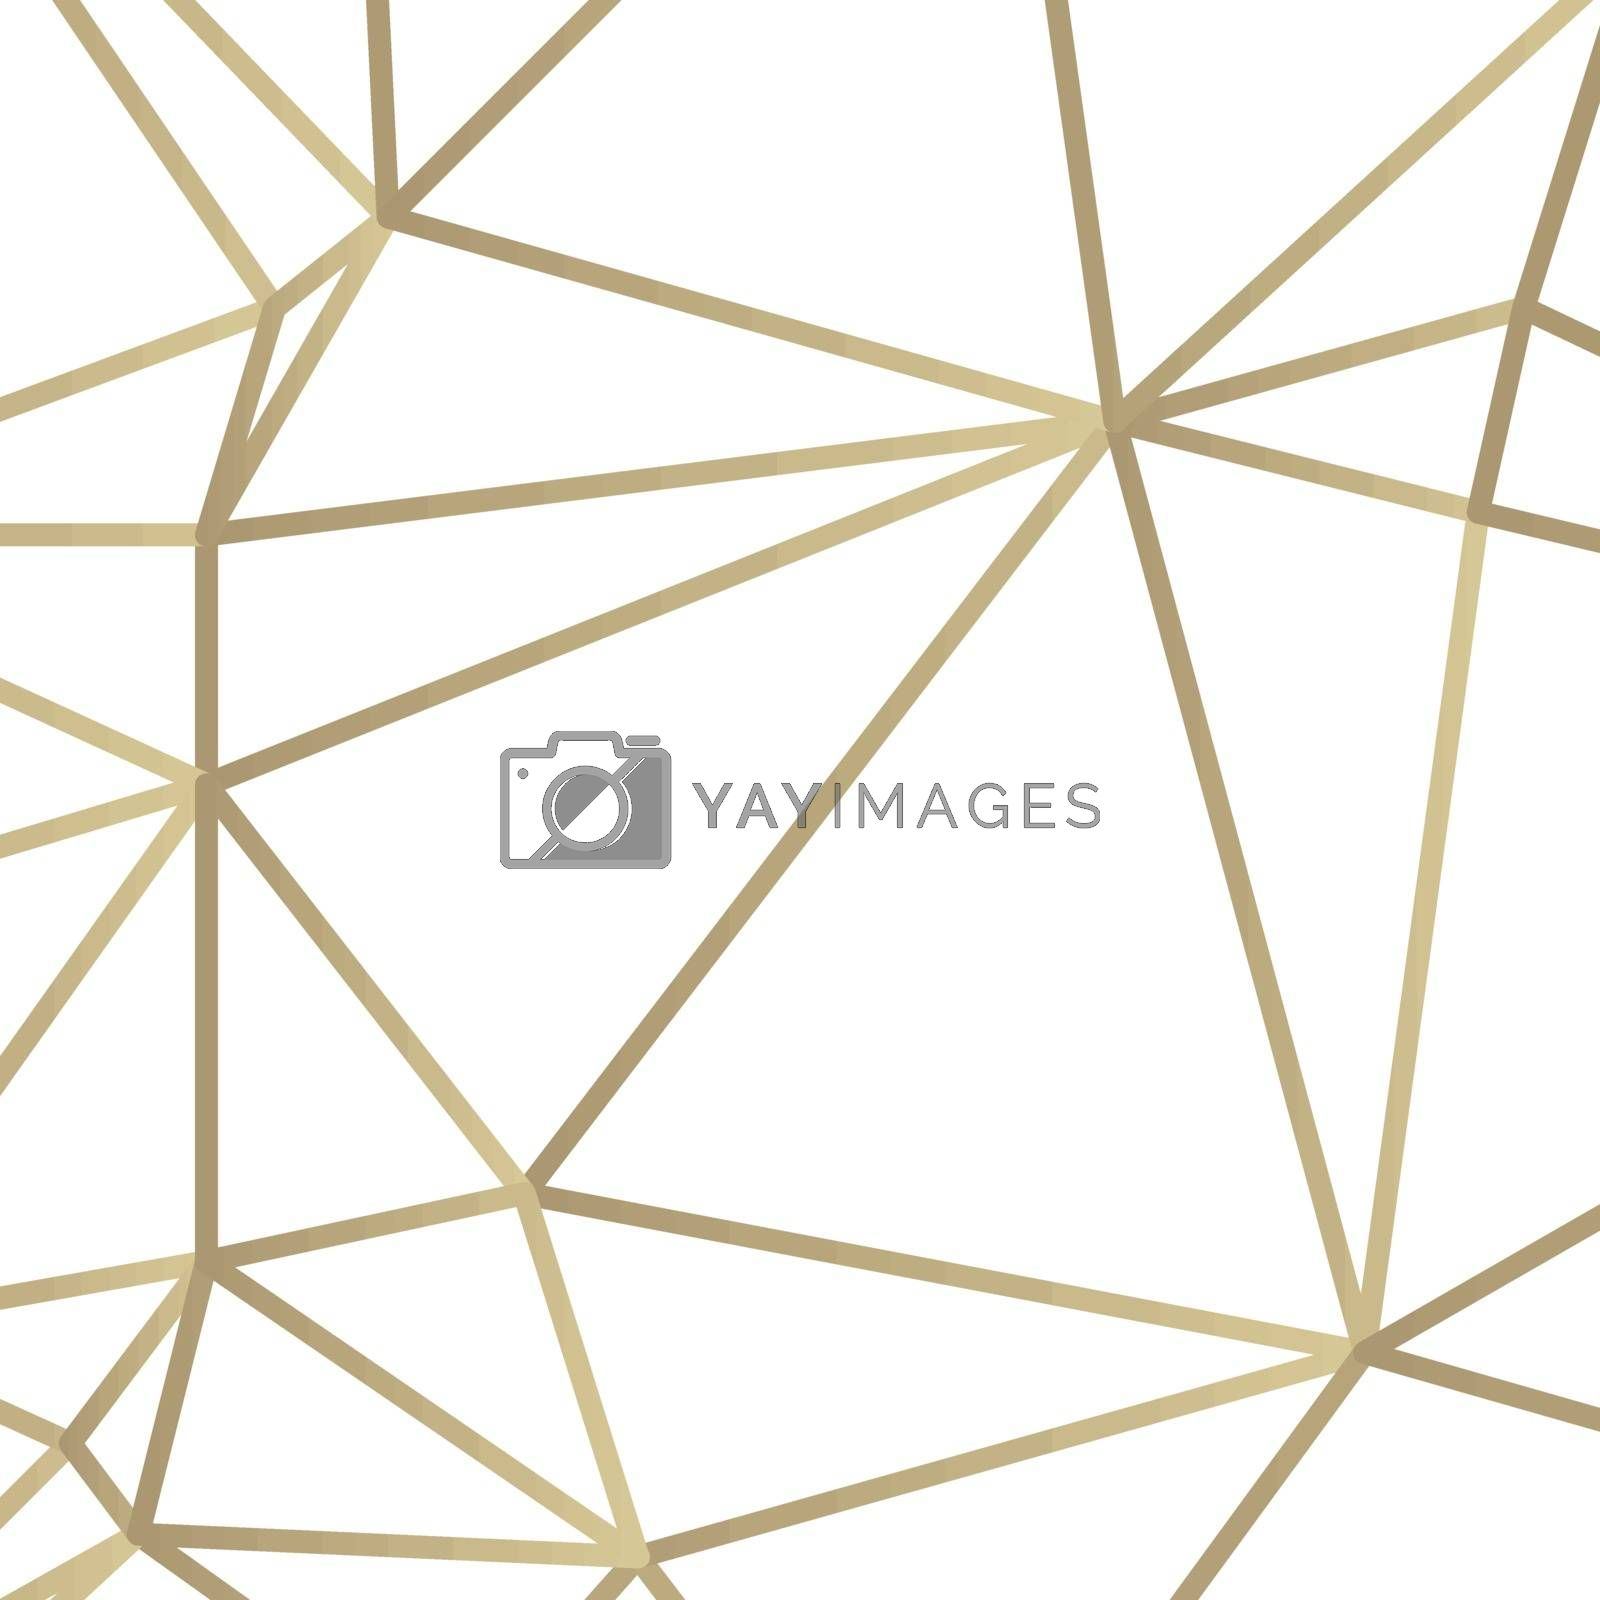 Golden lines vector illustration in art deco style on white background